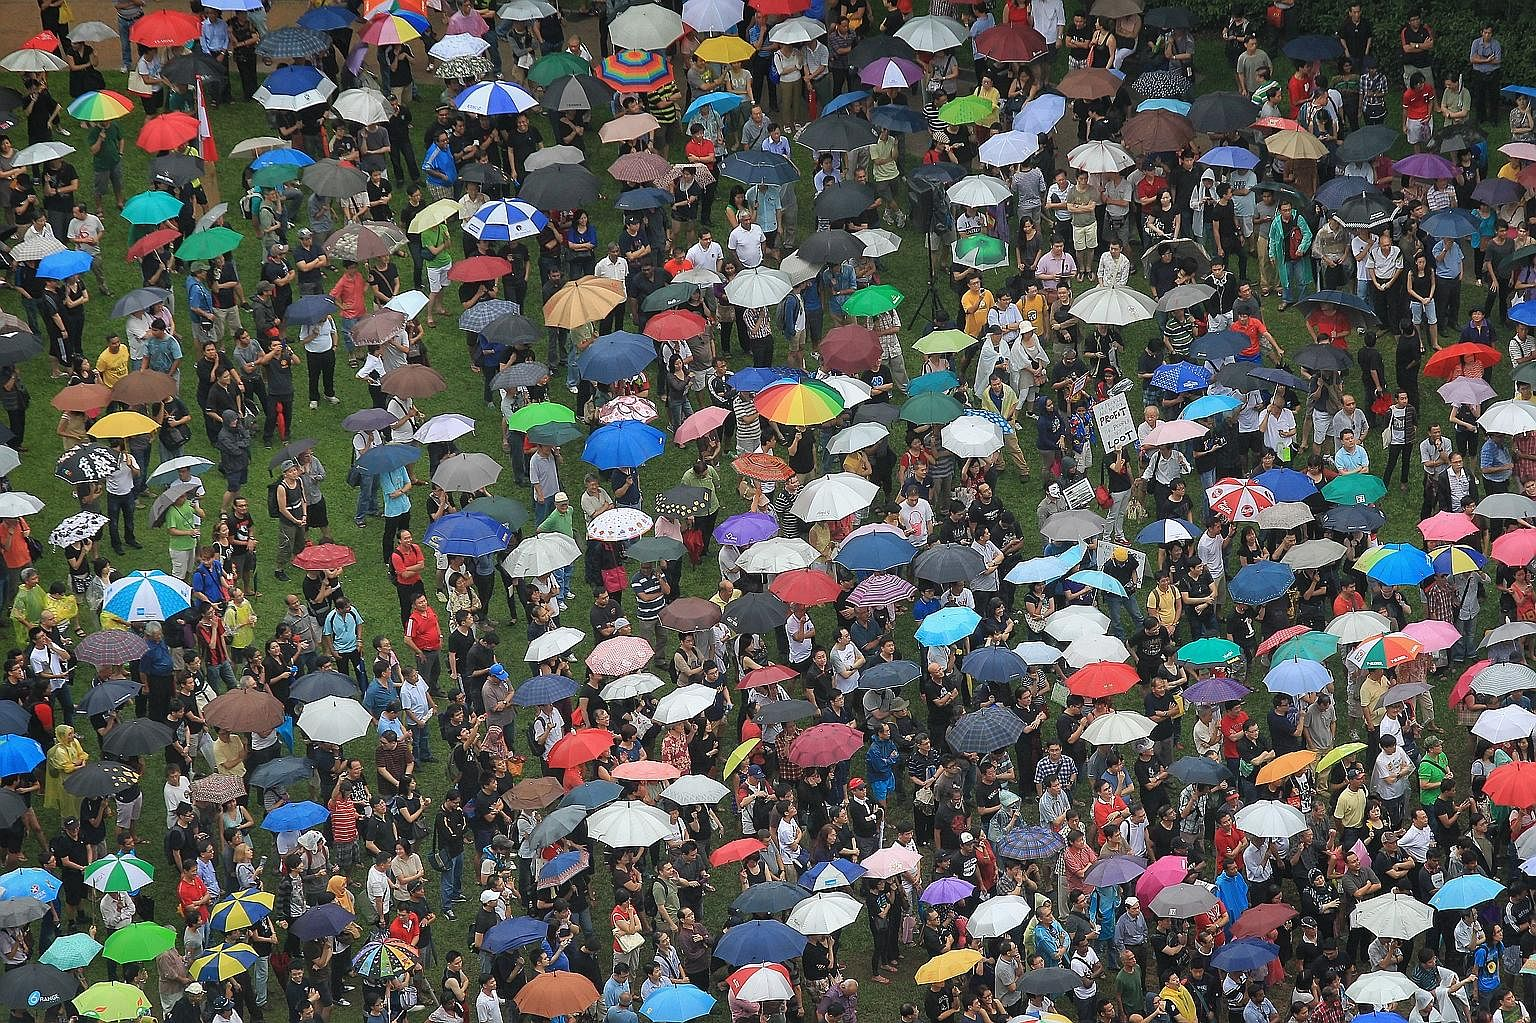 The crowd at Speakers' Corner in Hong Lim Park on Feb 16, 2013, at a protest against the Population White Paper. None of the assumptions in the Population White Paper has changed since then, and on some, the outlook has actually worsened, not got bet